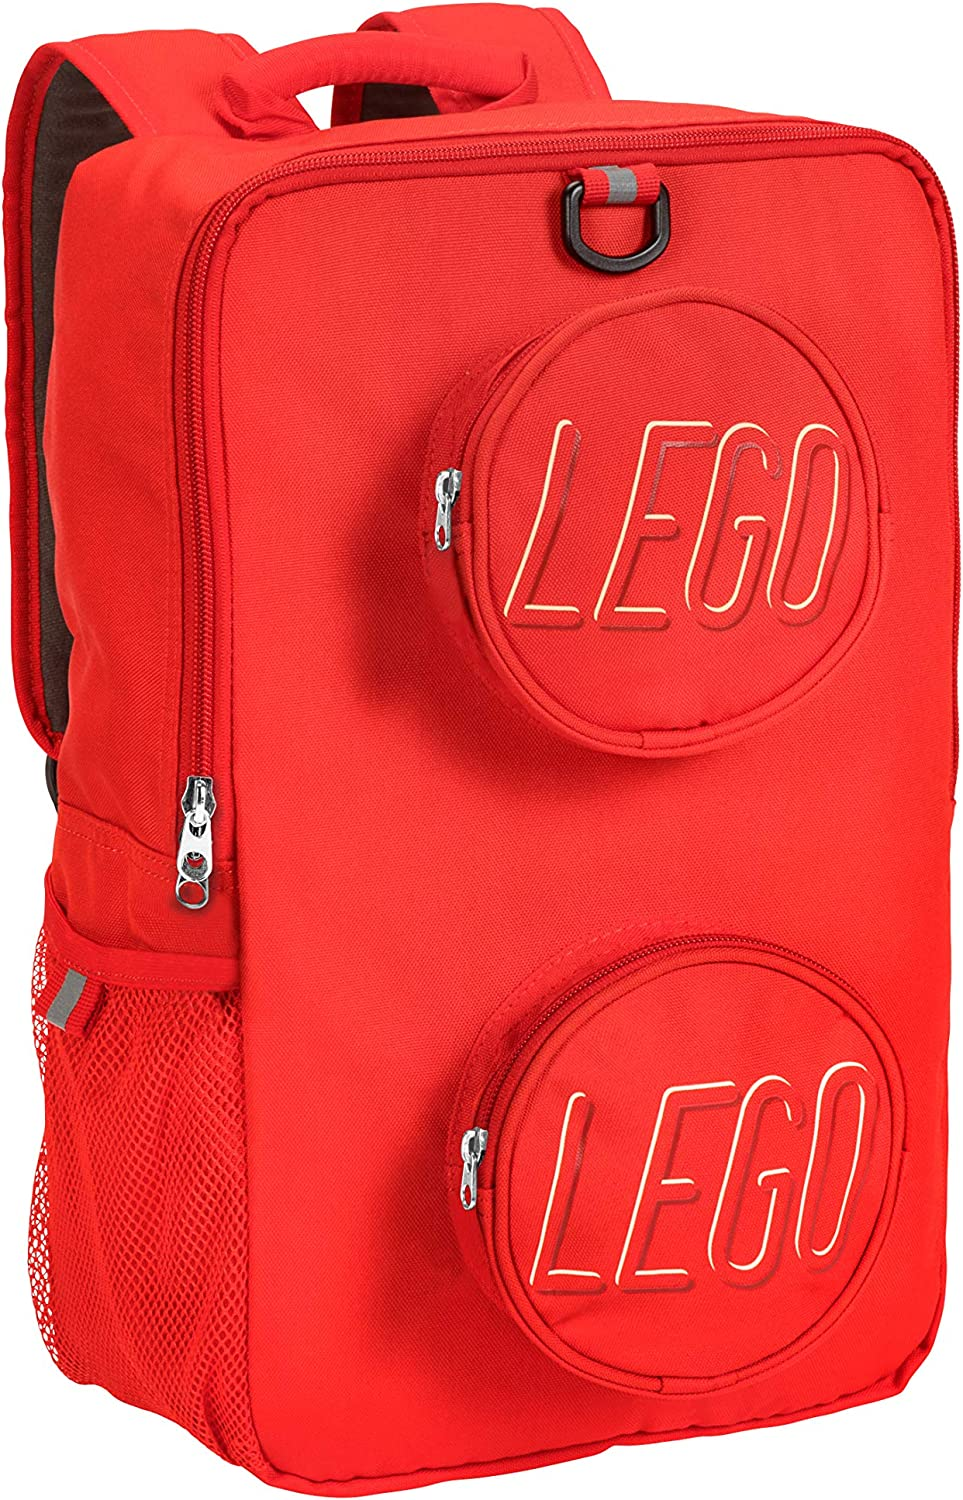 LEGO Brick, Red, One Size